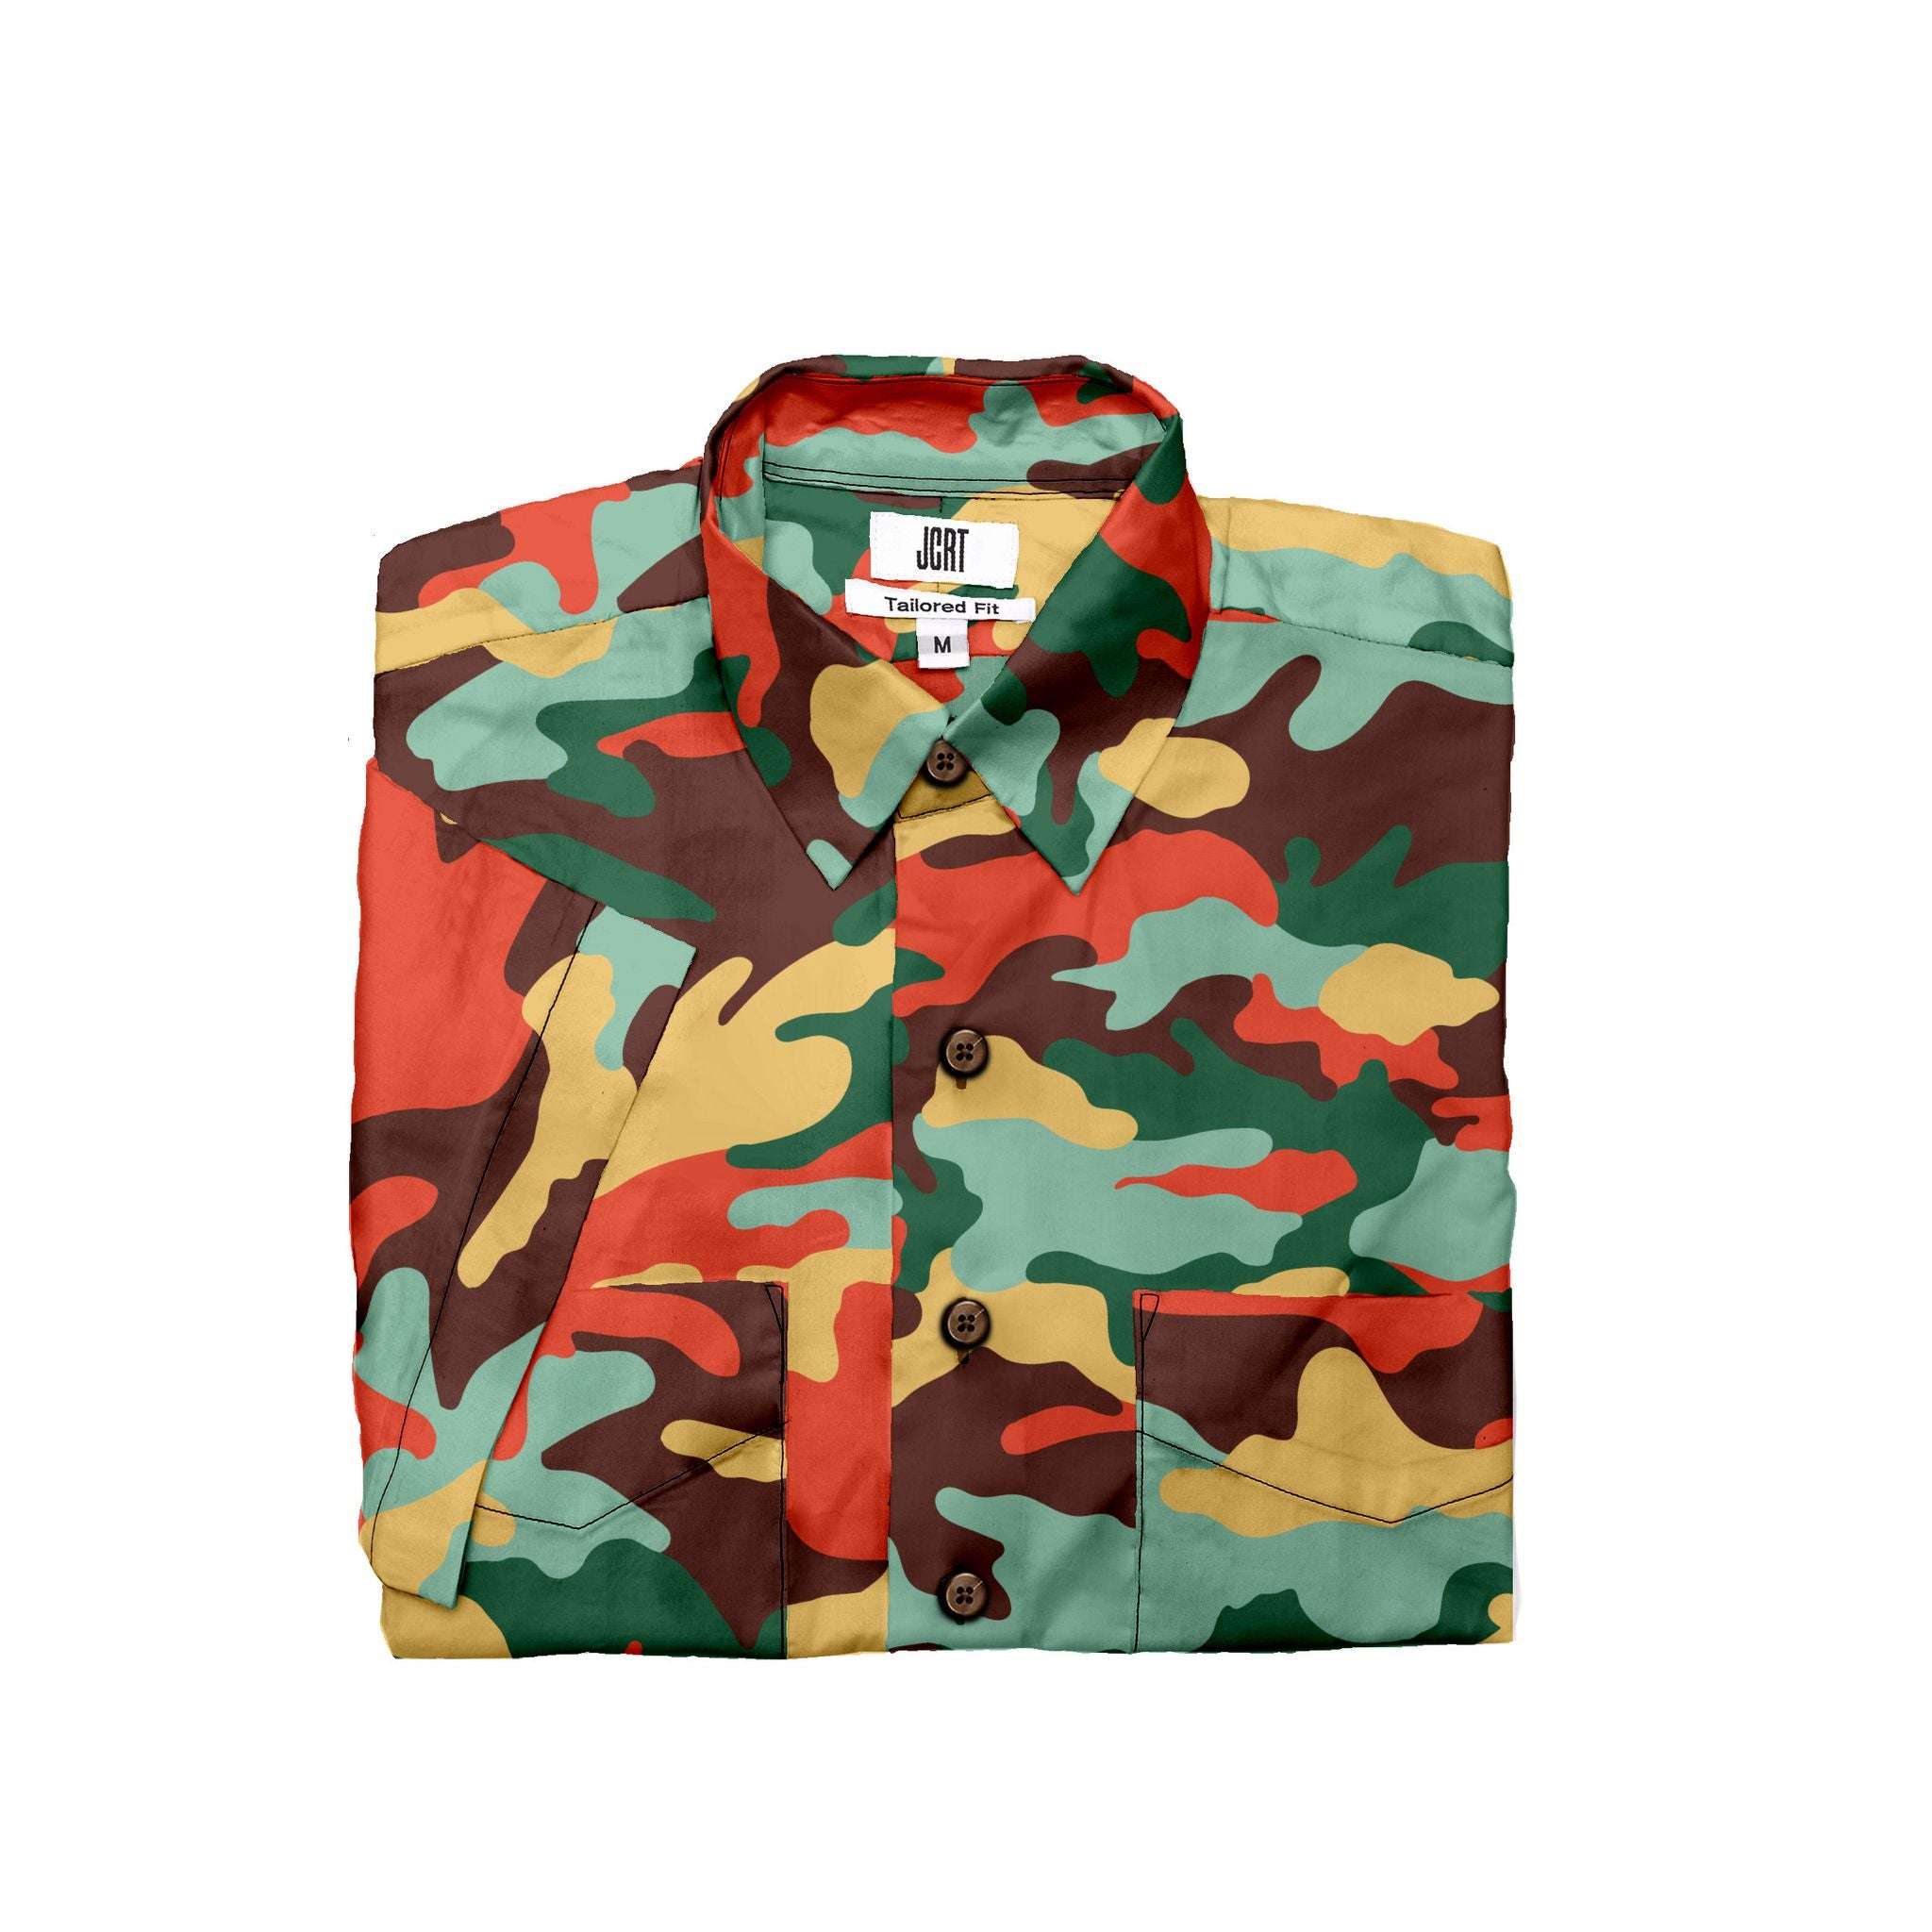 The M1942 Camouflage Short Sleeve Shirt